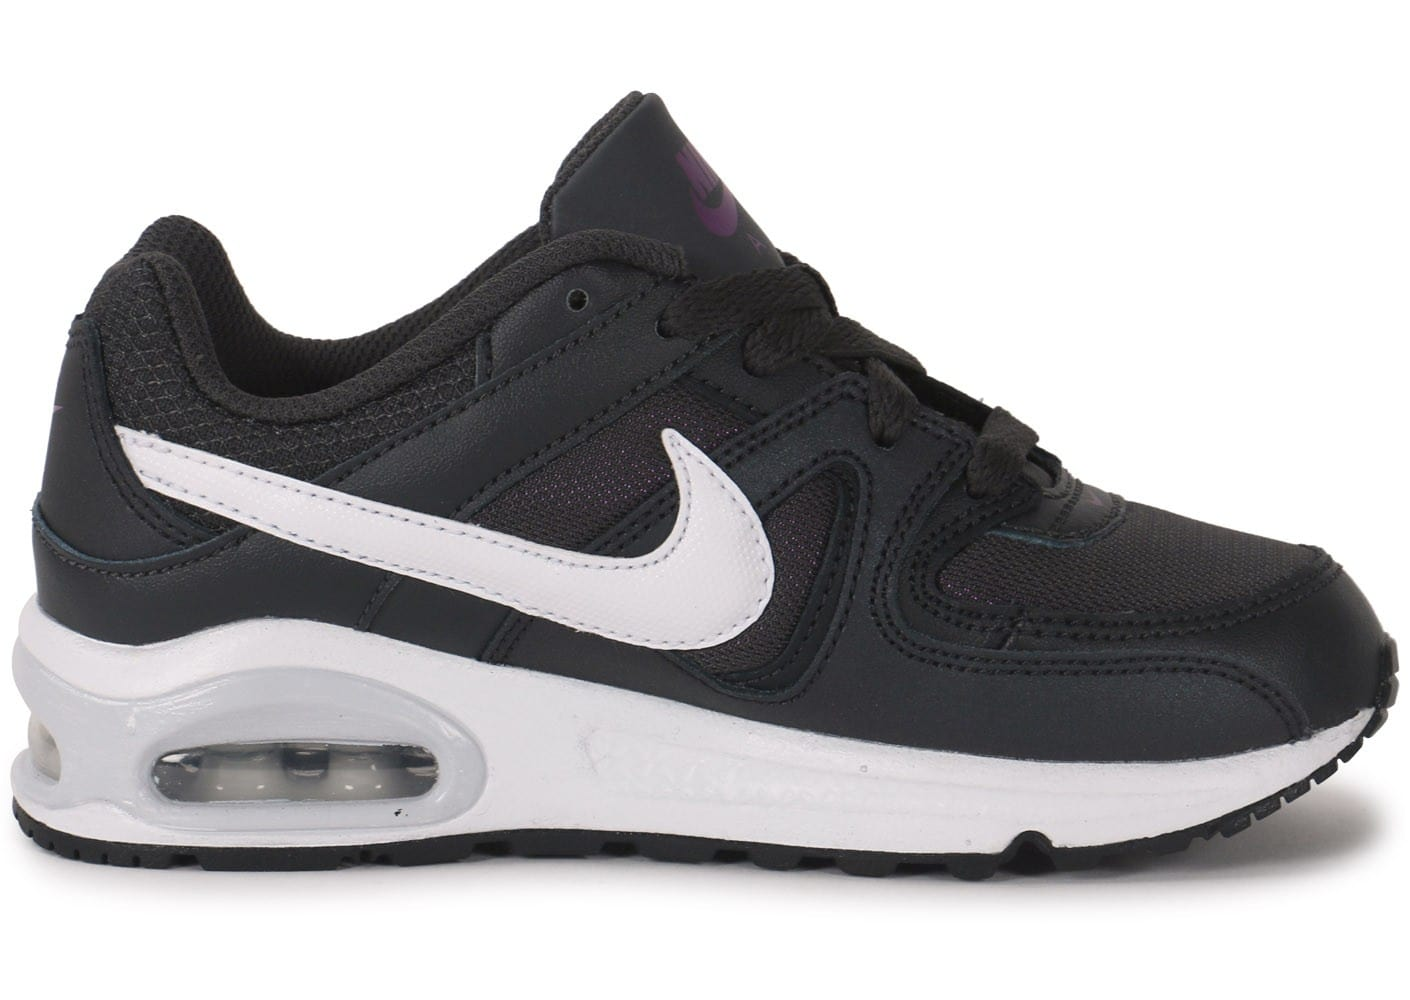 Nike Air Max Command gris anthracite et violet Enfants